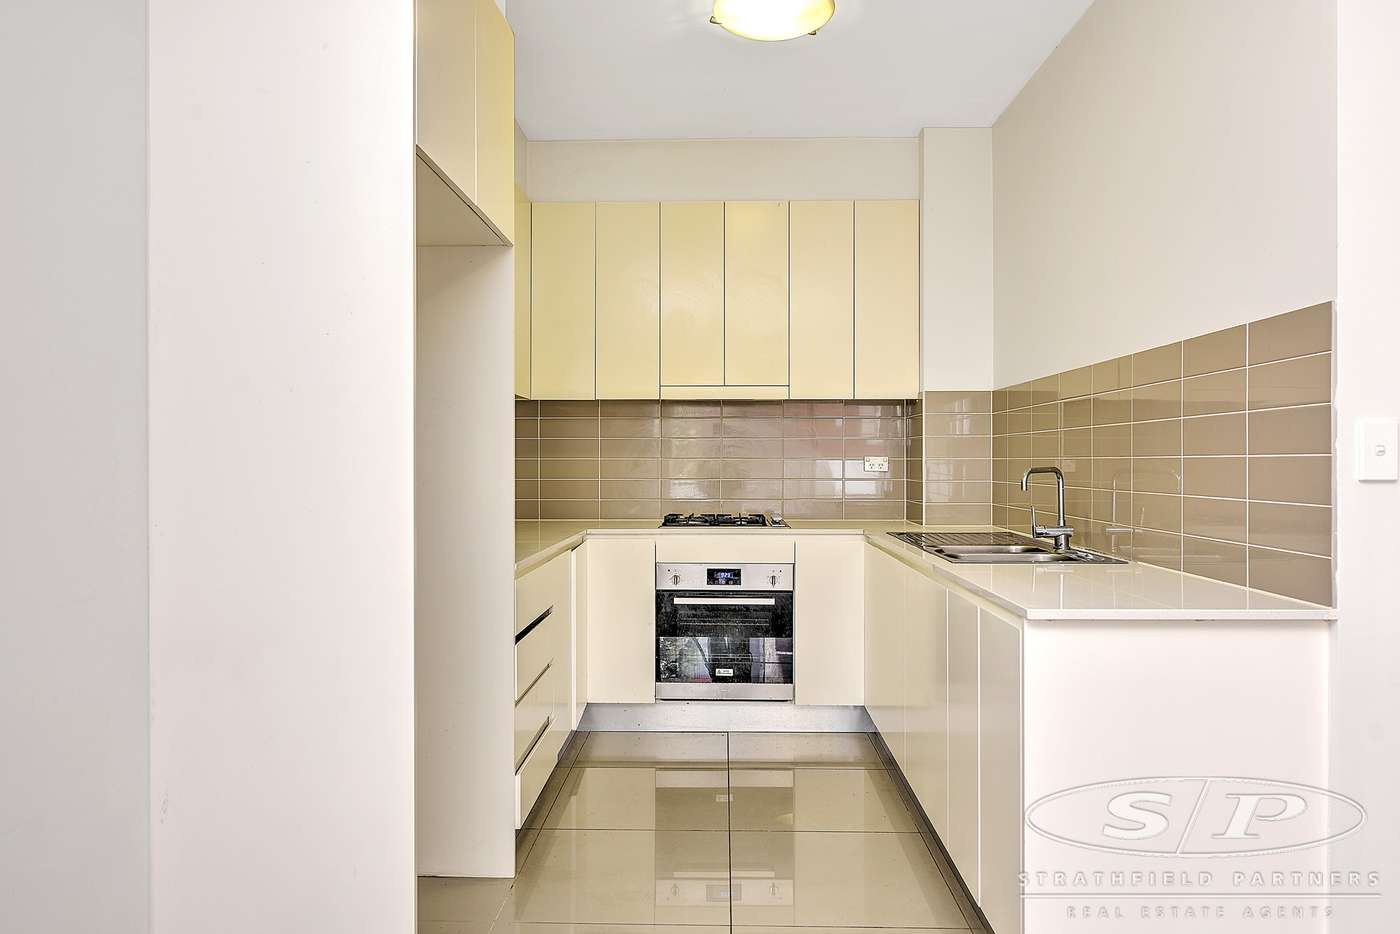 Main view of Homely unit listing, 29 Campbell Street, Parramatta NSW 2150